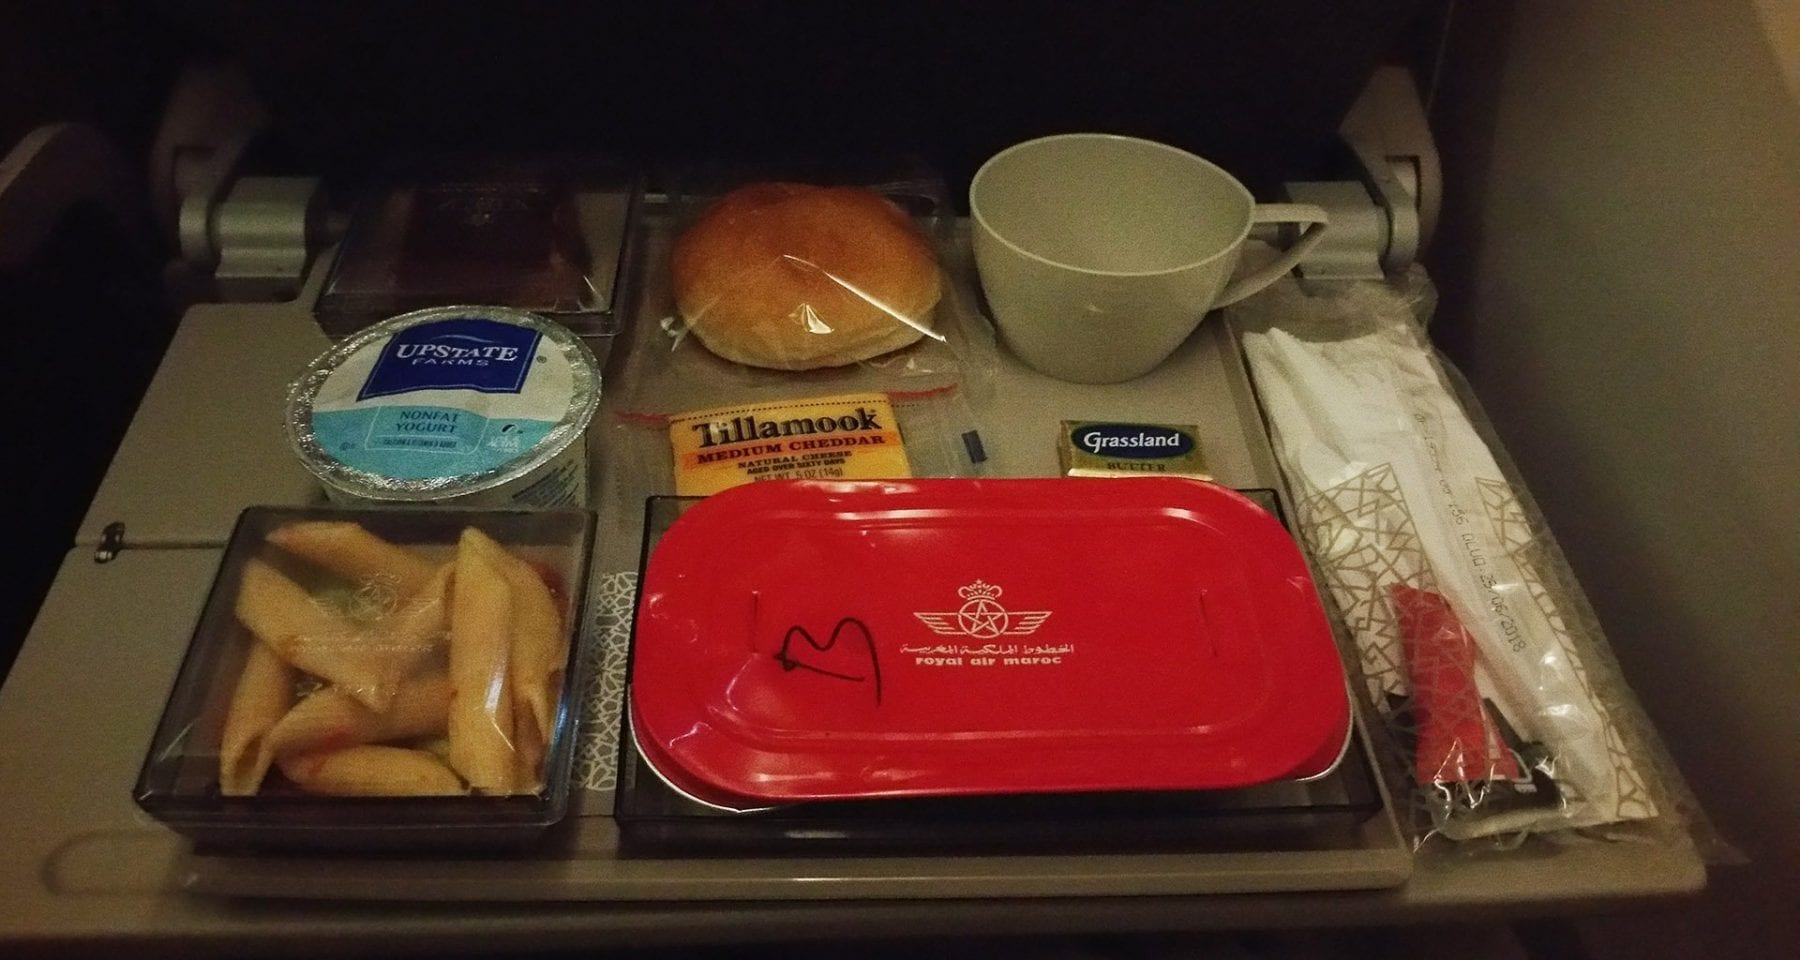 Royal Air Maroc economy class meal from New York to Morocco